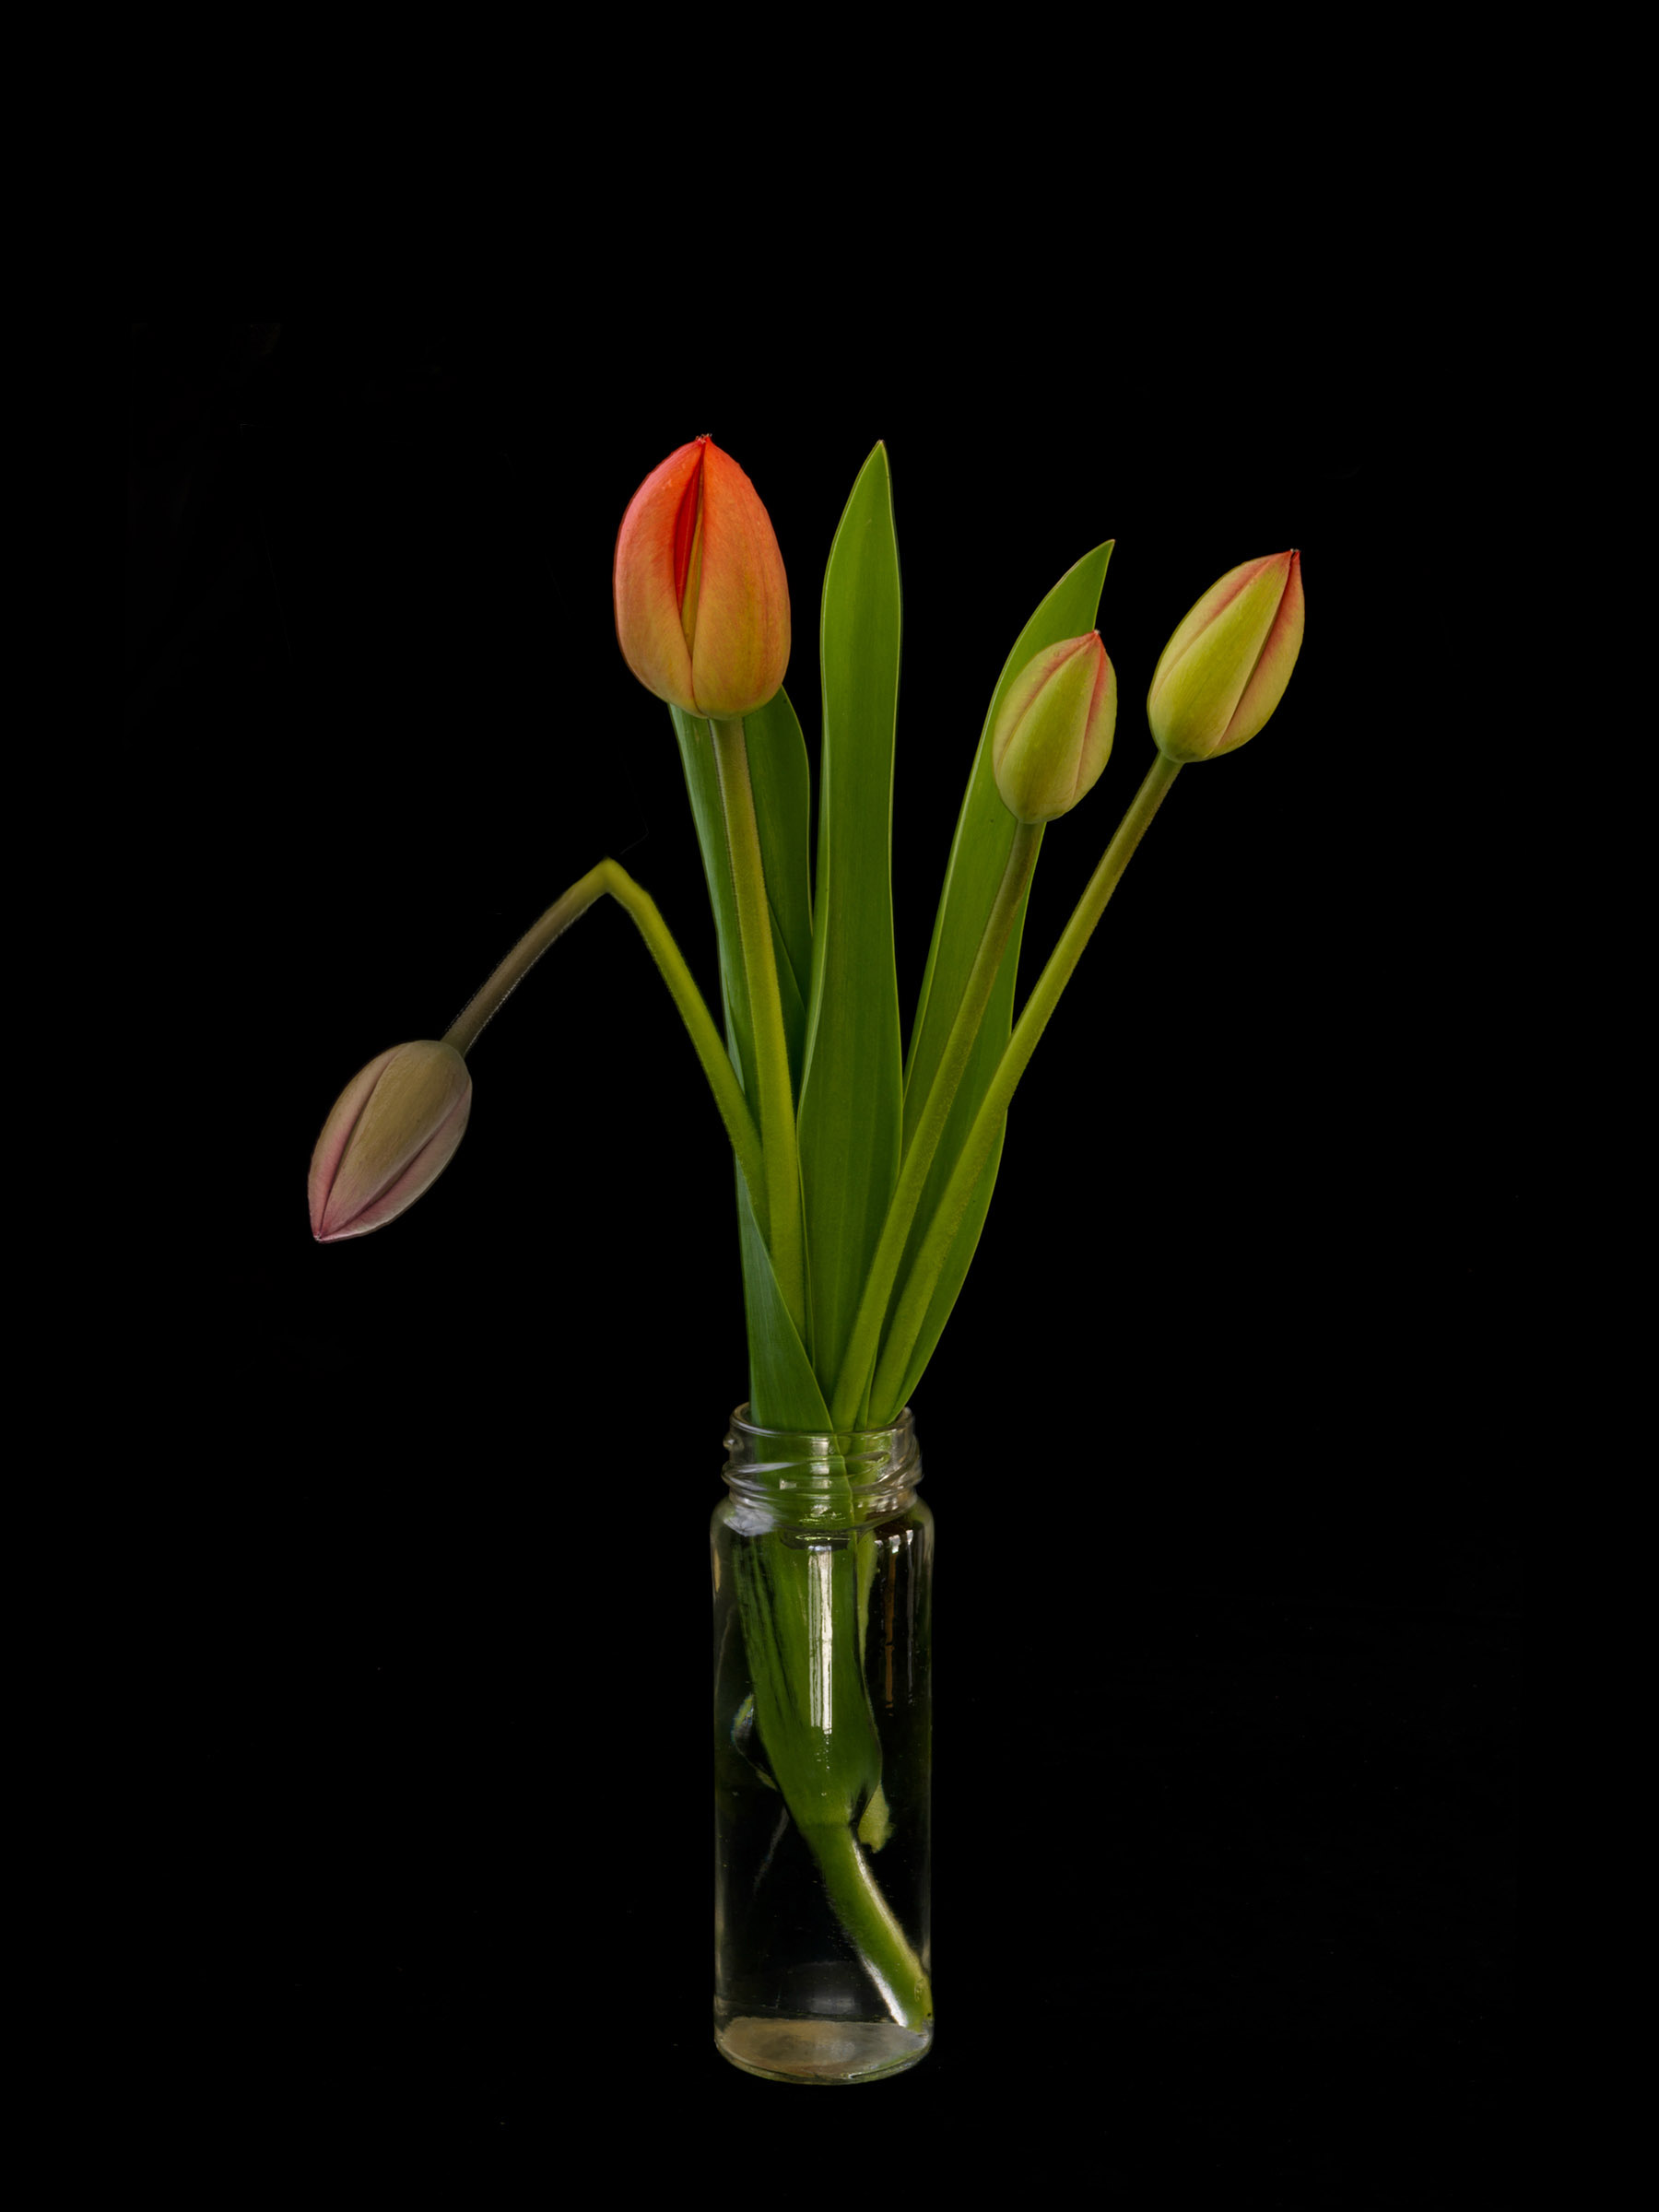 Tulips One Dead Arrangement, Wick Beavers Still Life Photographer NYC